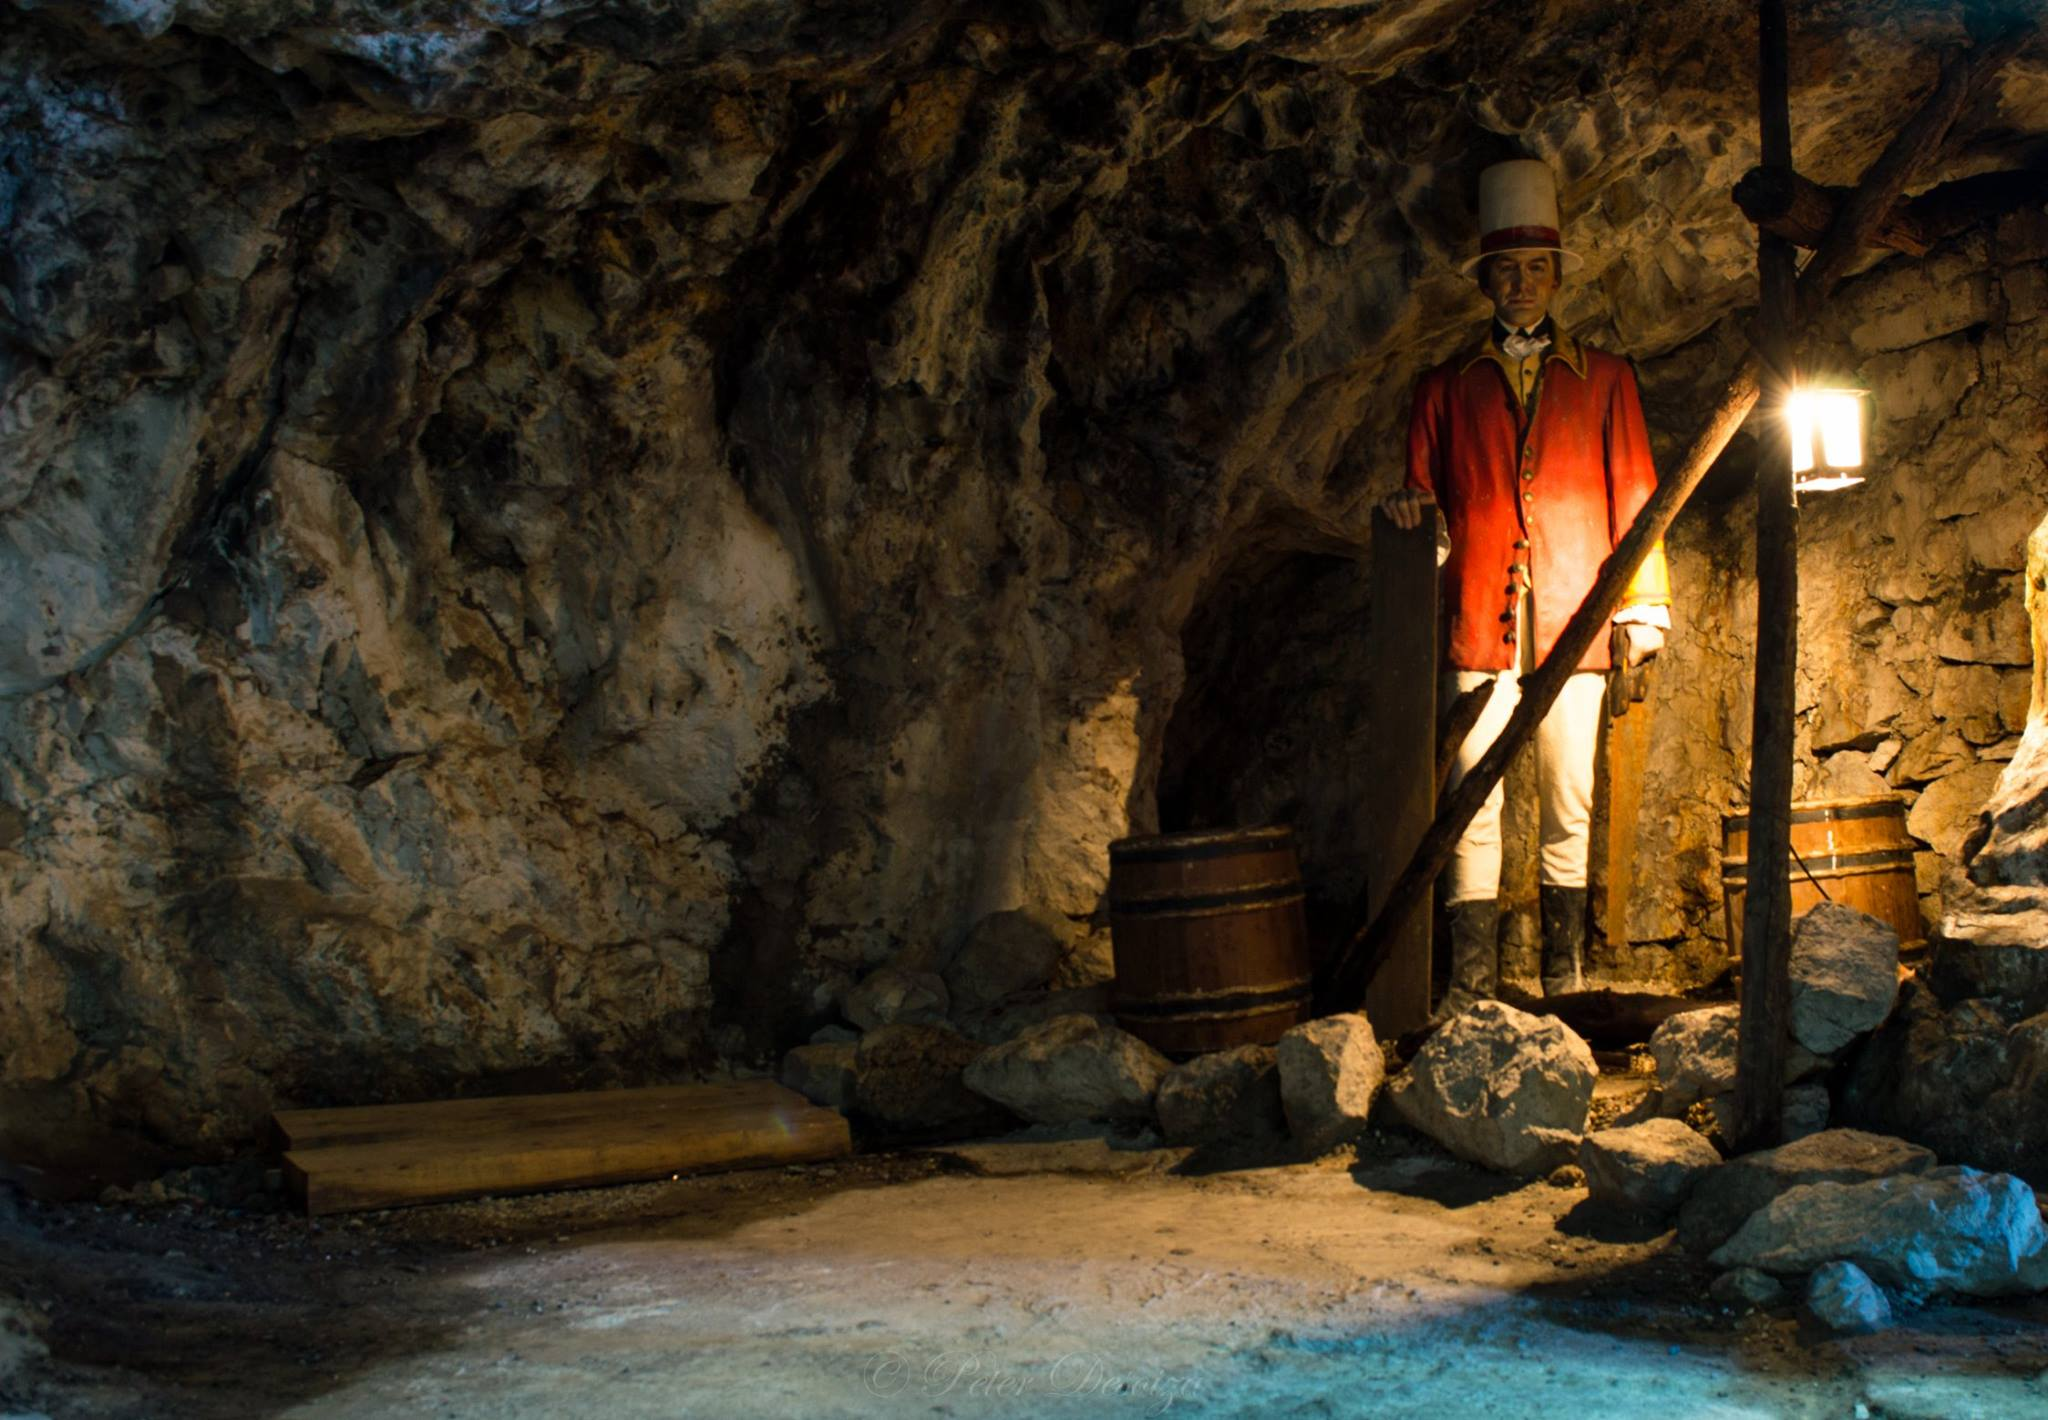 gibraltar-cave-with-a-wax-model